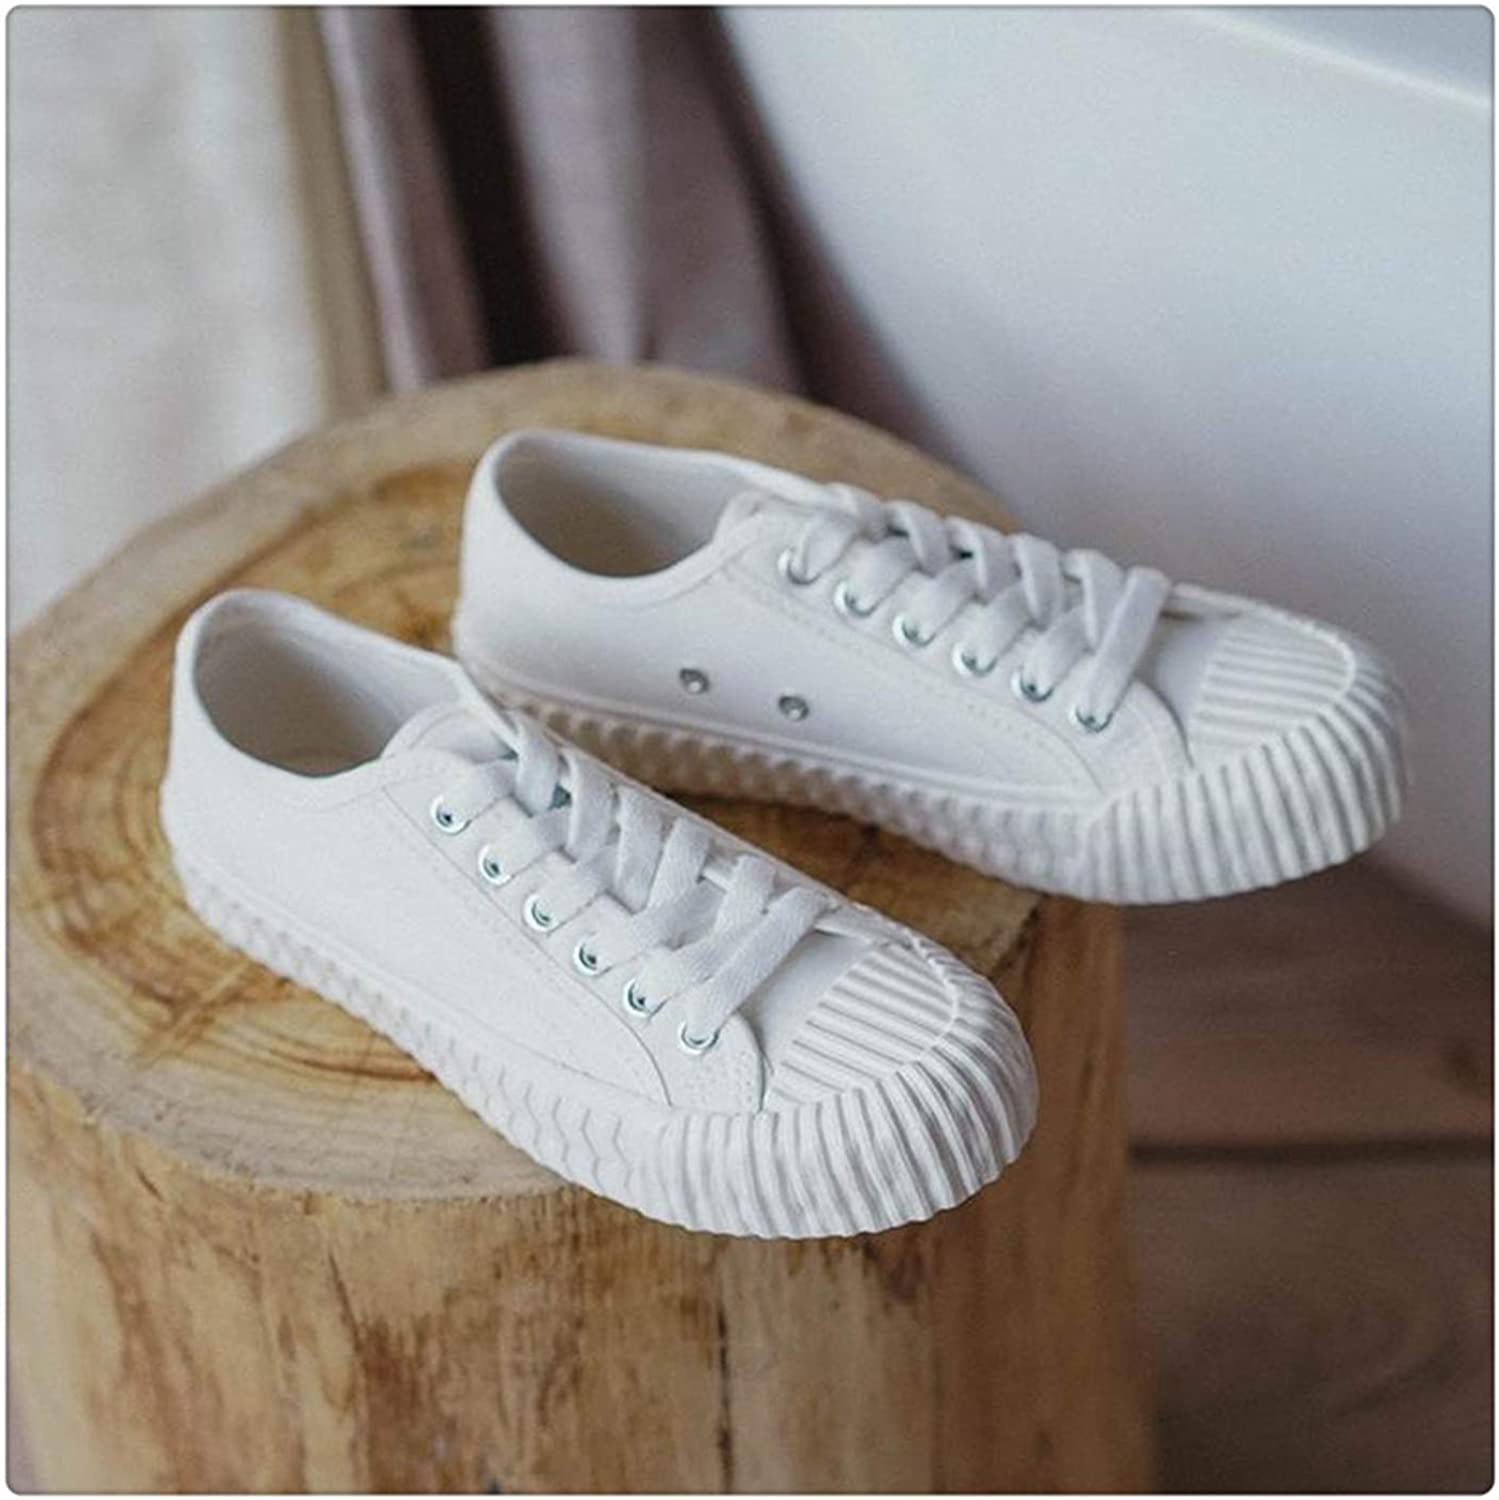 LUSDO& Women Casual Sneakers 2019 White Canvas shoes Female Spring Summer Woman Students Walking shoes shoes Tenis Feminino White 40